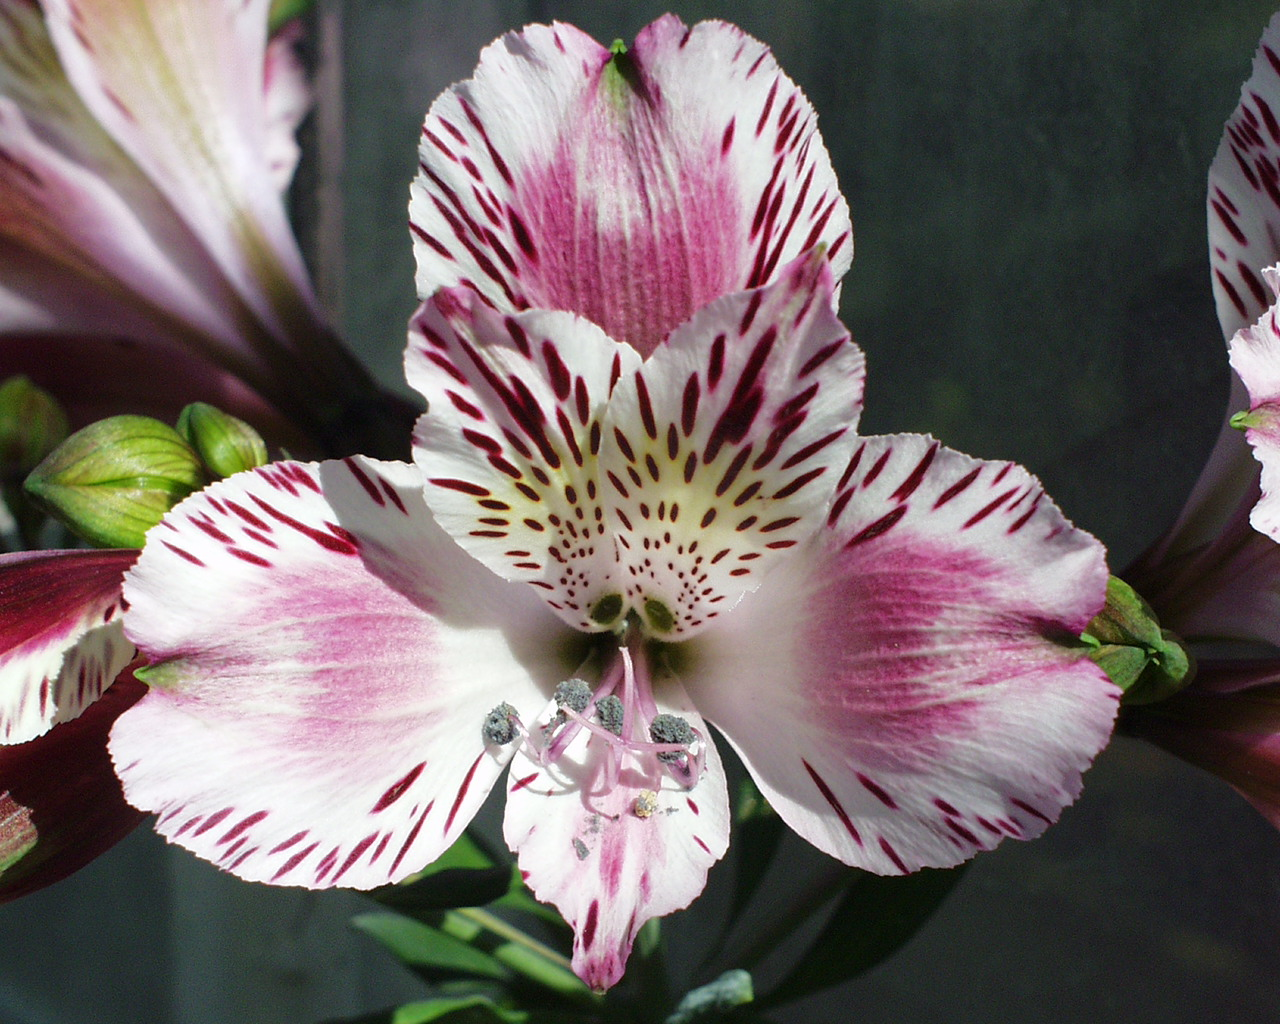 alstroemeria  the lily of the incas  kinds of ornamental plants, Beautiful flower